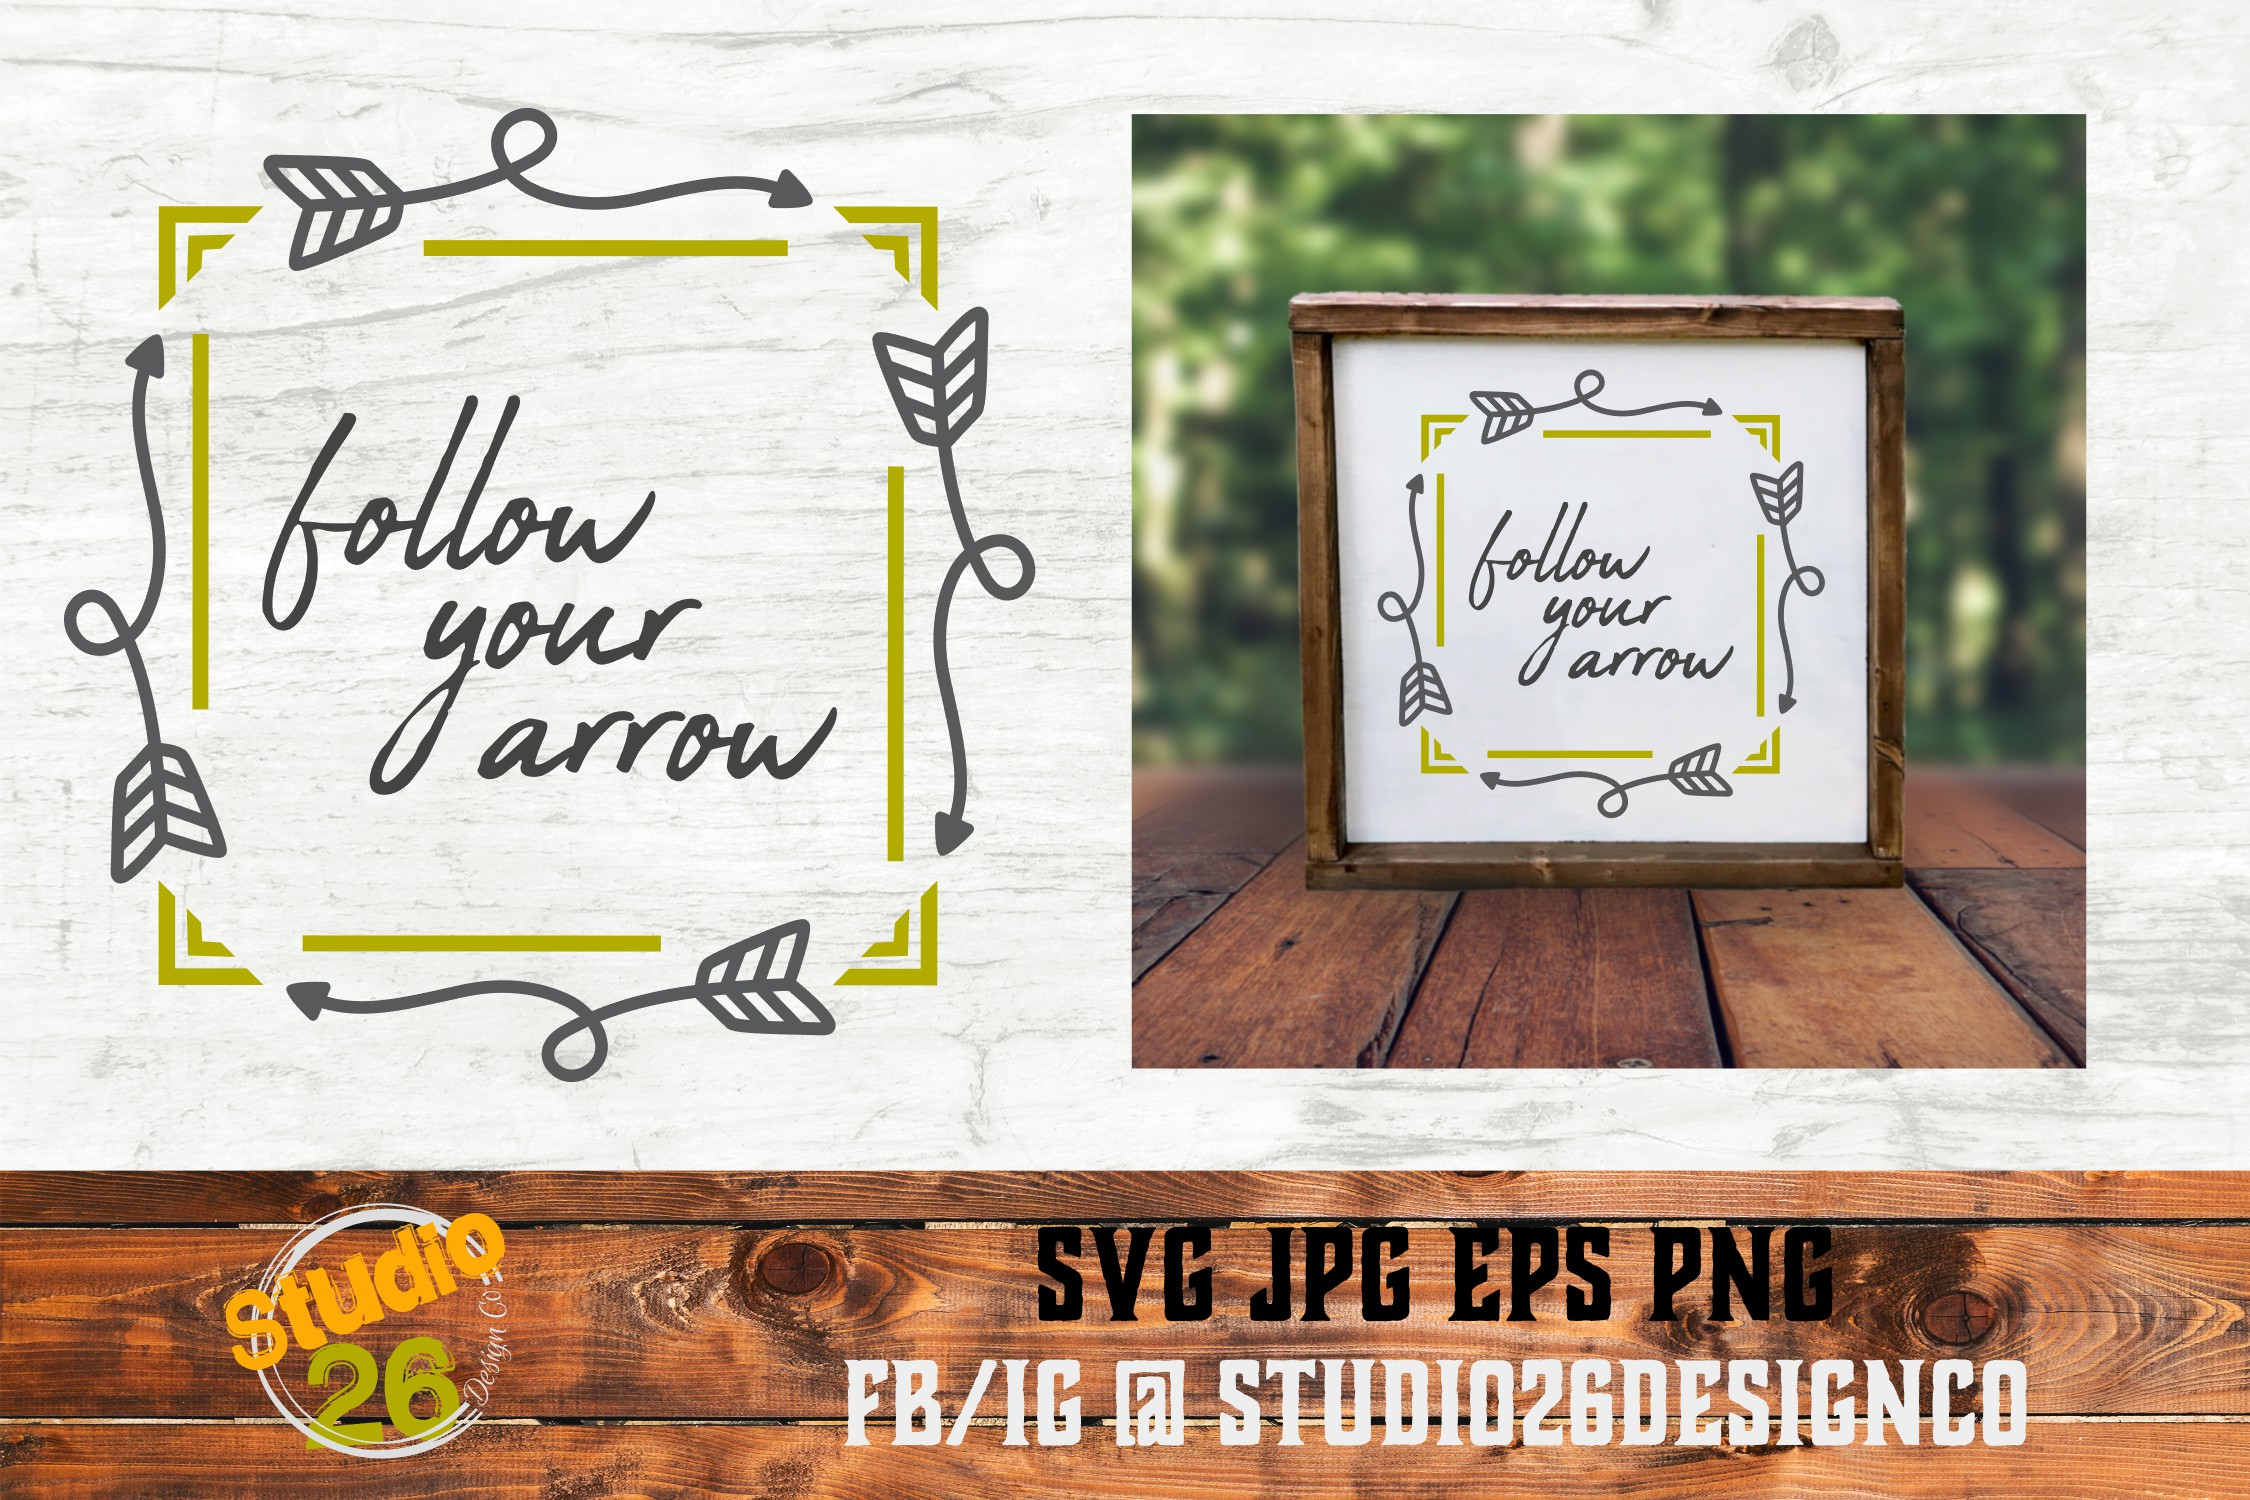 Follow Your Arrow - SVG PNG EPS example image 3